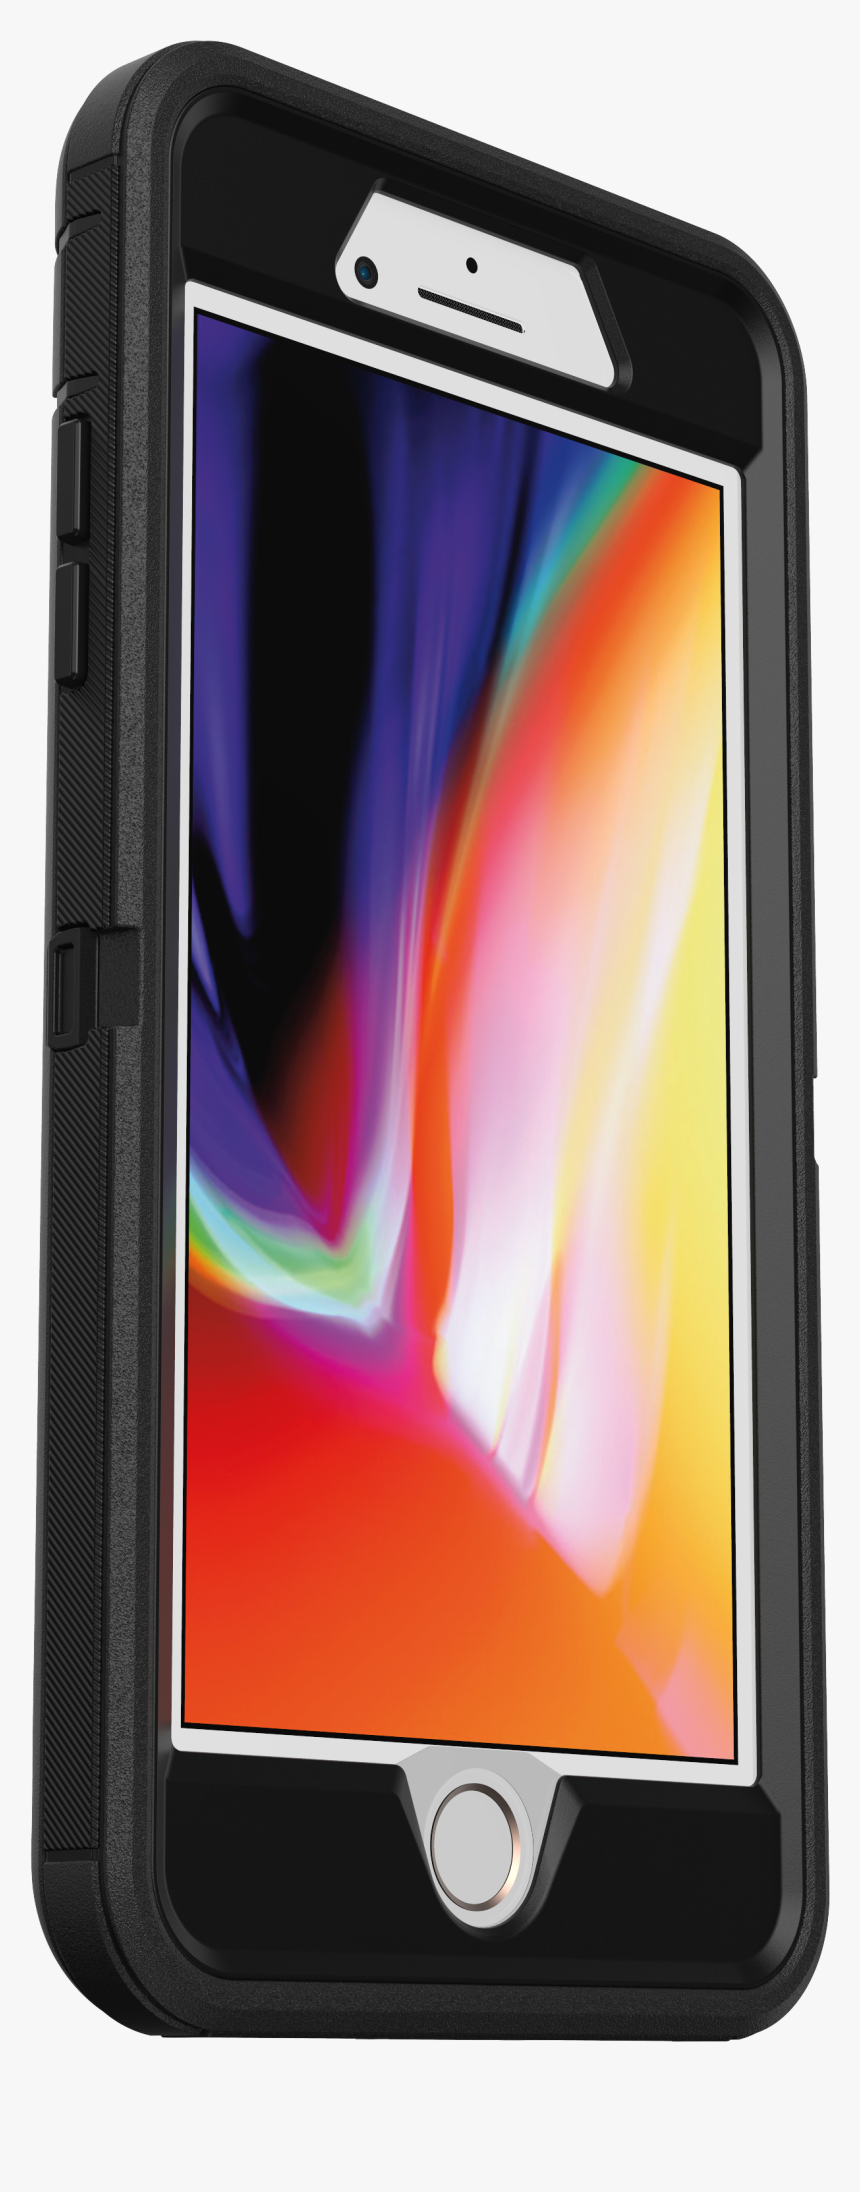 Iphone 8 Plus Otterbox Defender Pro, HD Png Download, Free Download